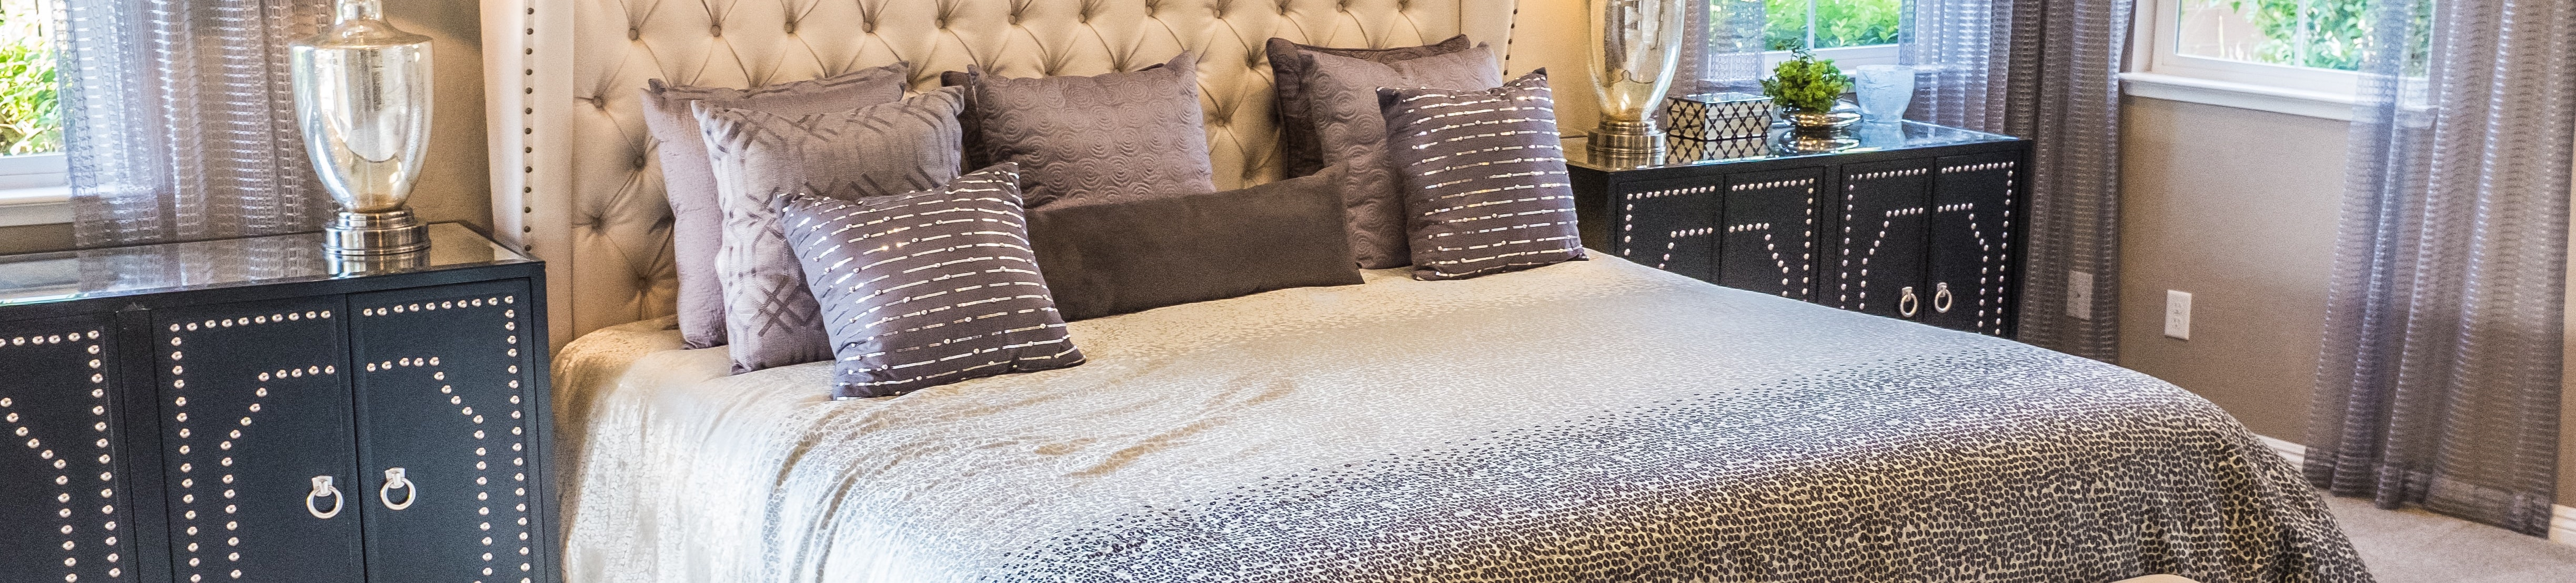 bedding on bed